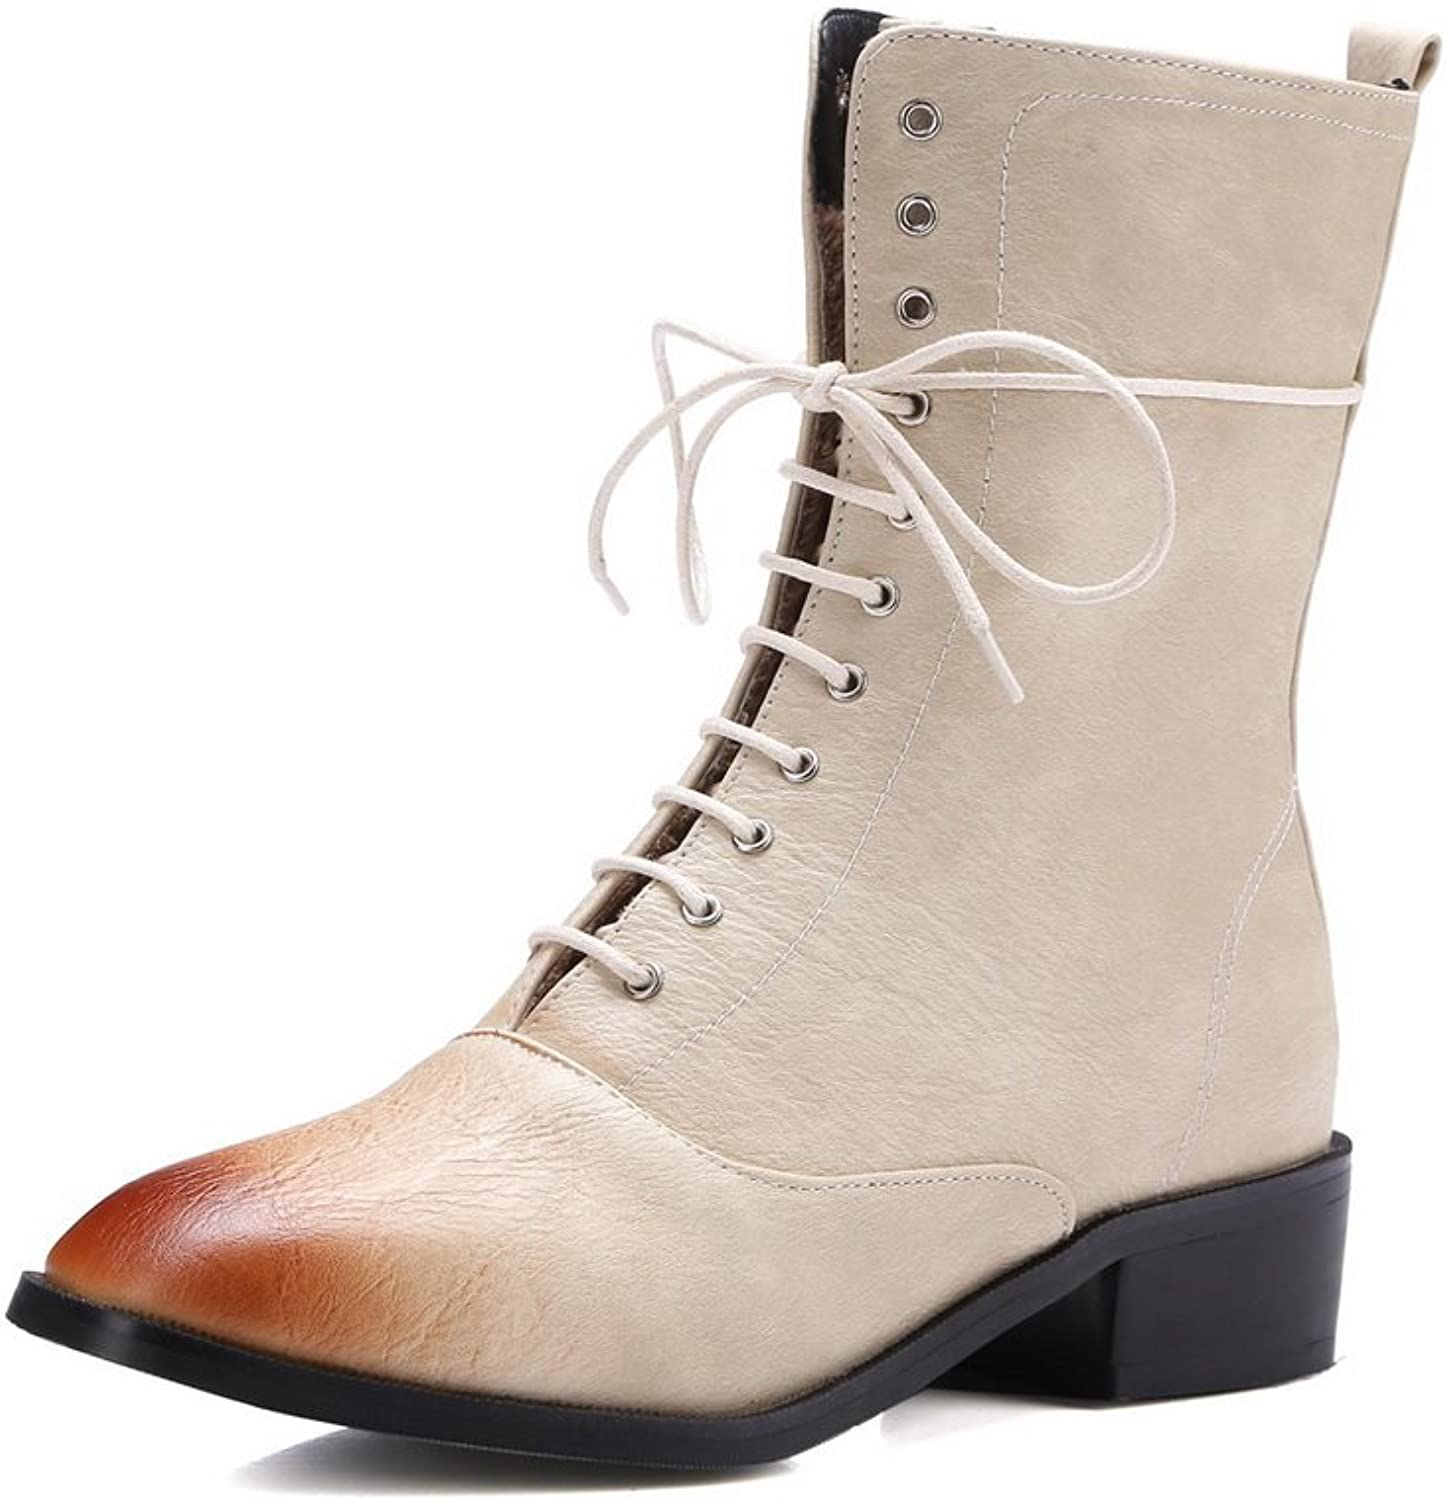 AandN Womens Boots Closed-Toe Lace-Up Adjustable-Strap Low-Heel Warm Lining Toggle Road Manmade Smooth Leather Fashion Urethane Boots DKU01951